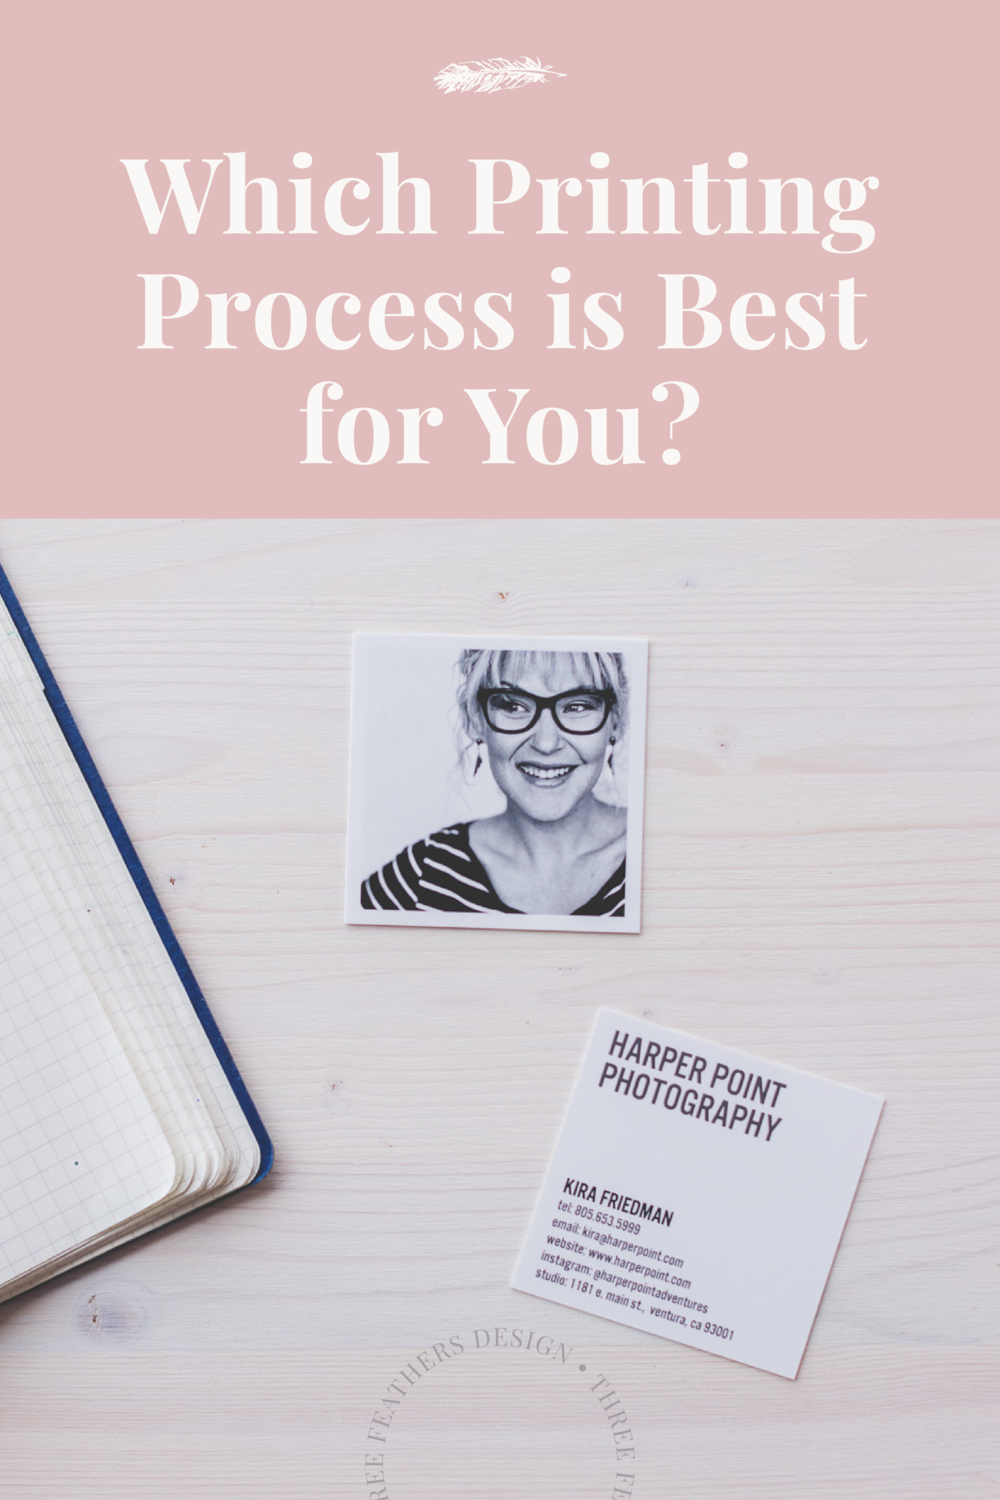 Which Printing Process is Best for You? | Three Feathers Design | threefeathersdesign.com